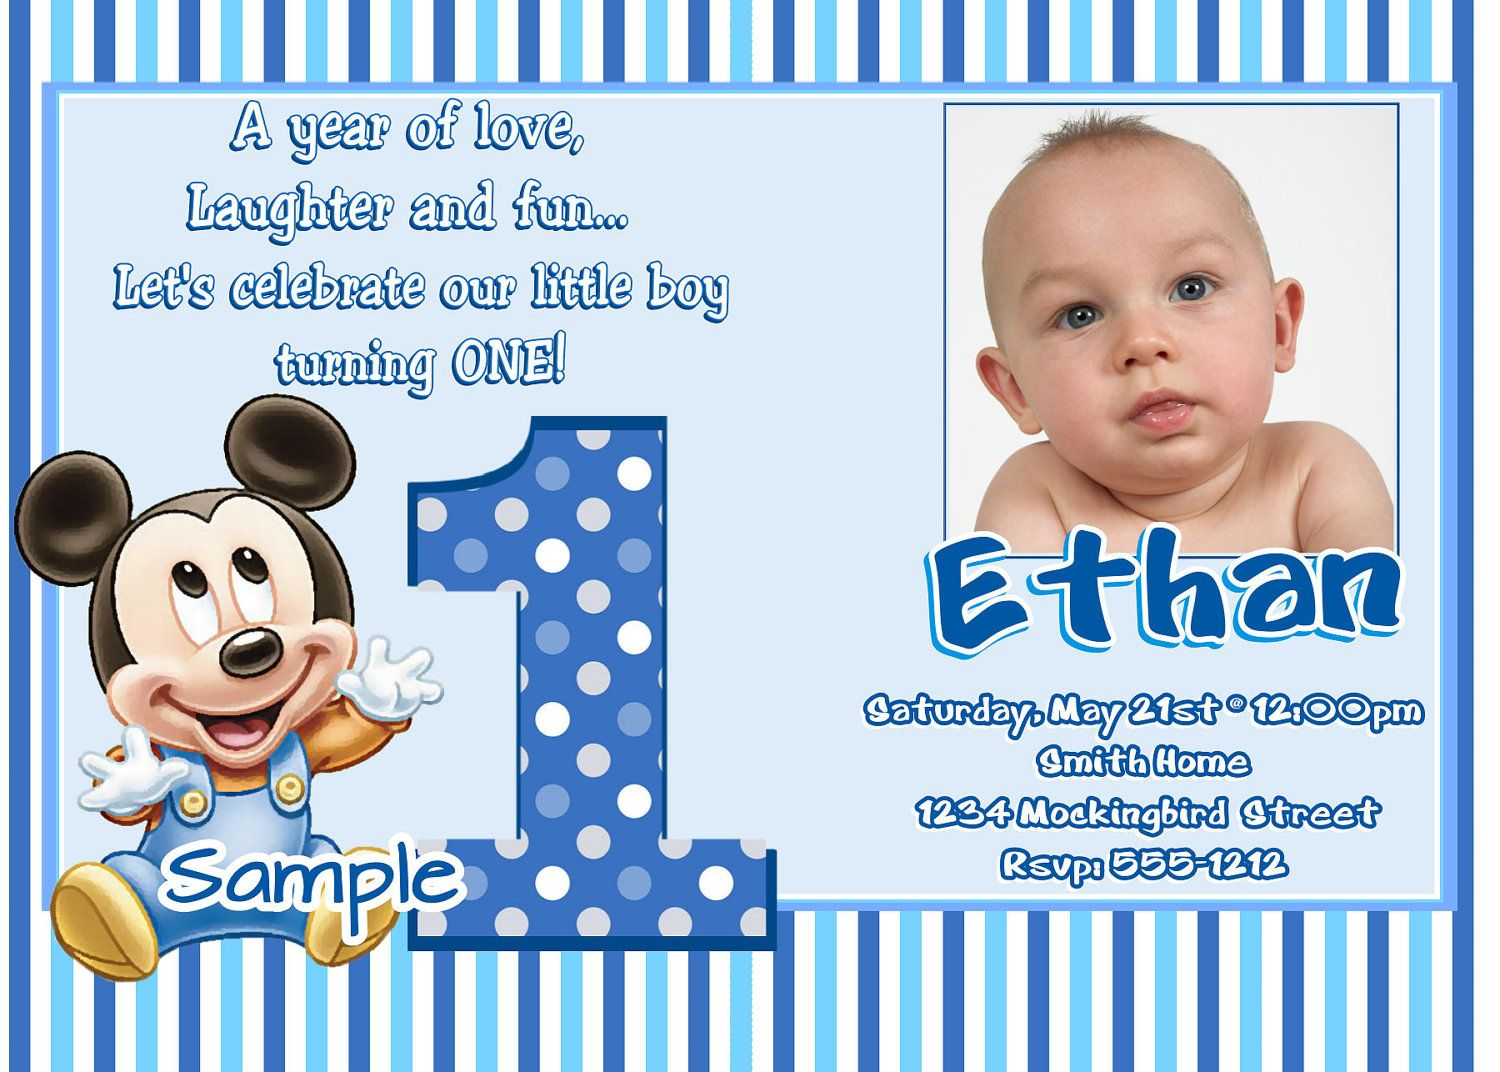 Free 1st birthday invitation maker invitation sample pinterest free 1st birthday invitation maker filmwisefo Images